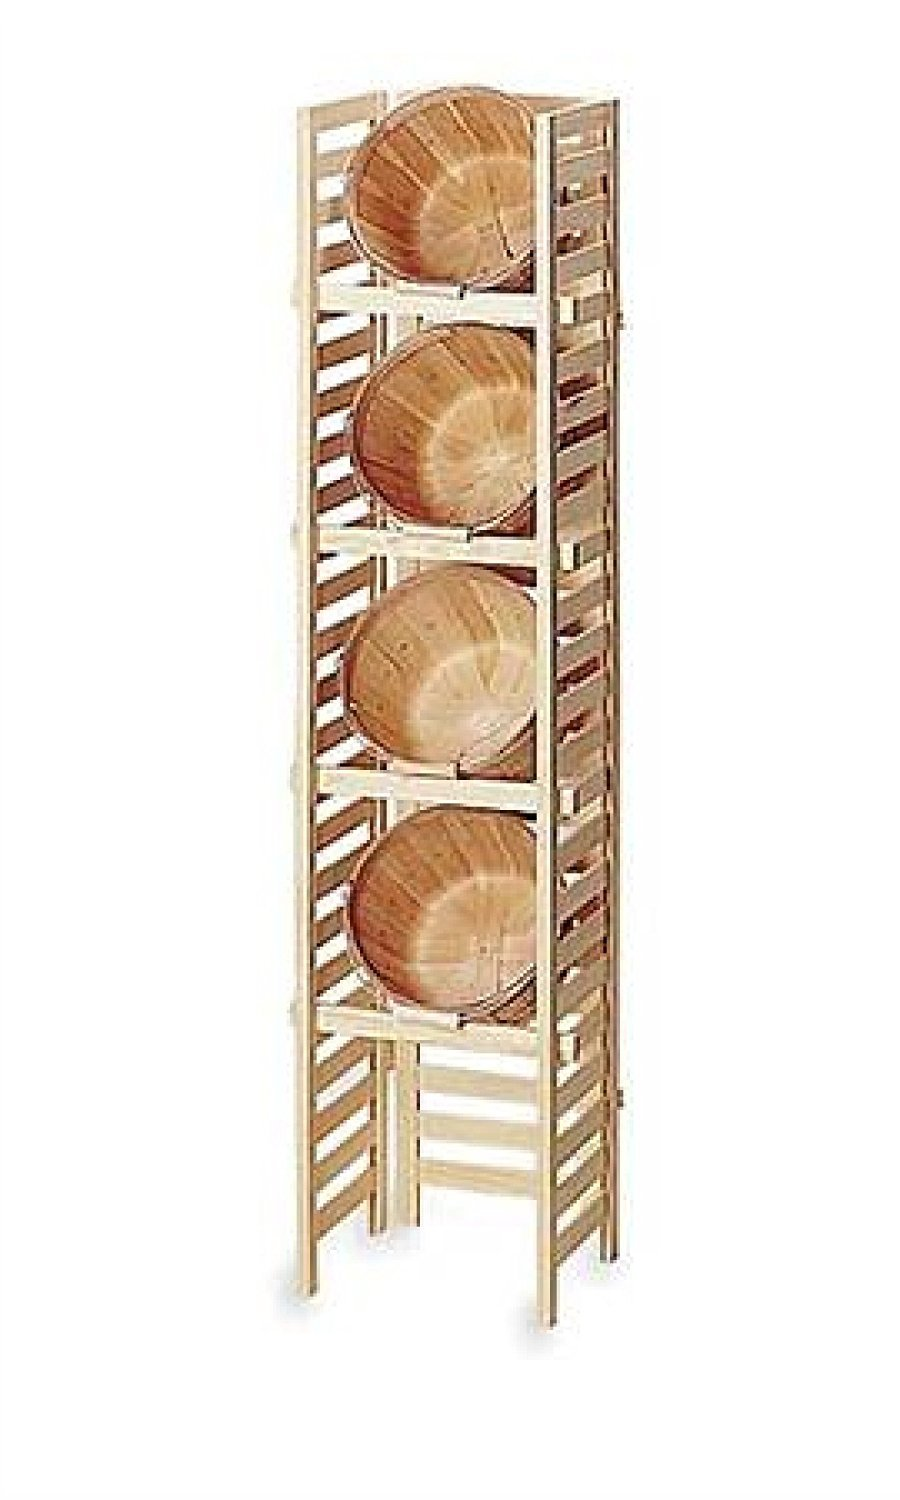 Towel Holder Storage Basket Rack Four Tier Peck Pine Wood Shelves Bathroom Spa Store Display Merchandising by SSW (Image #1)